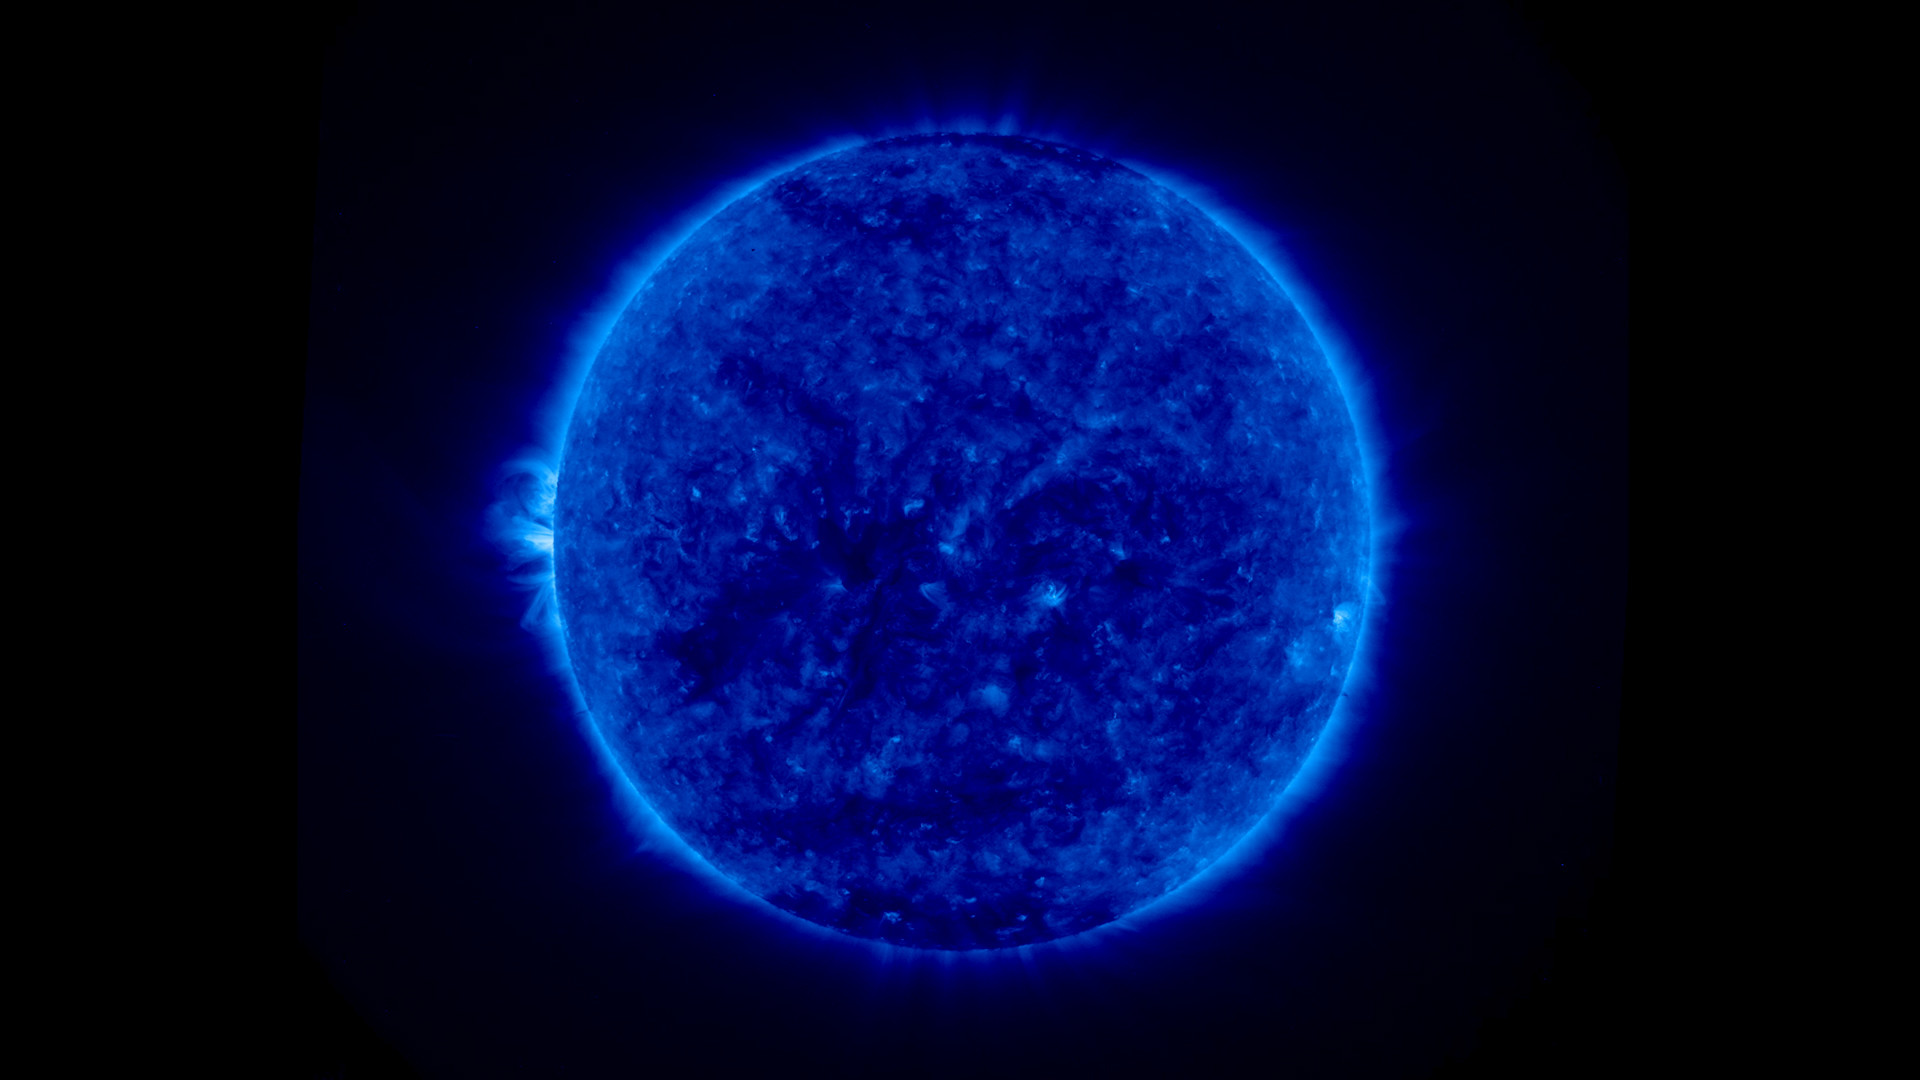 Images above: Images of the full sun. On the left is the 2-D image and on  the right is the 3-D image. Click on thumbnails for high resolution images.